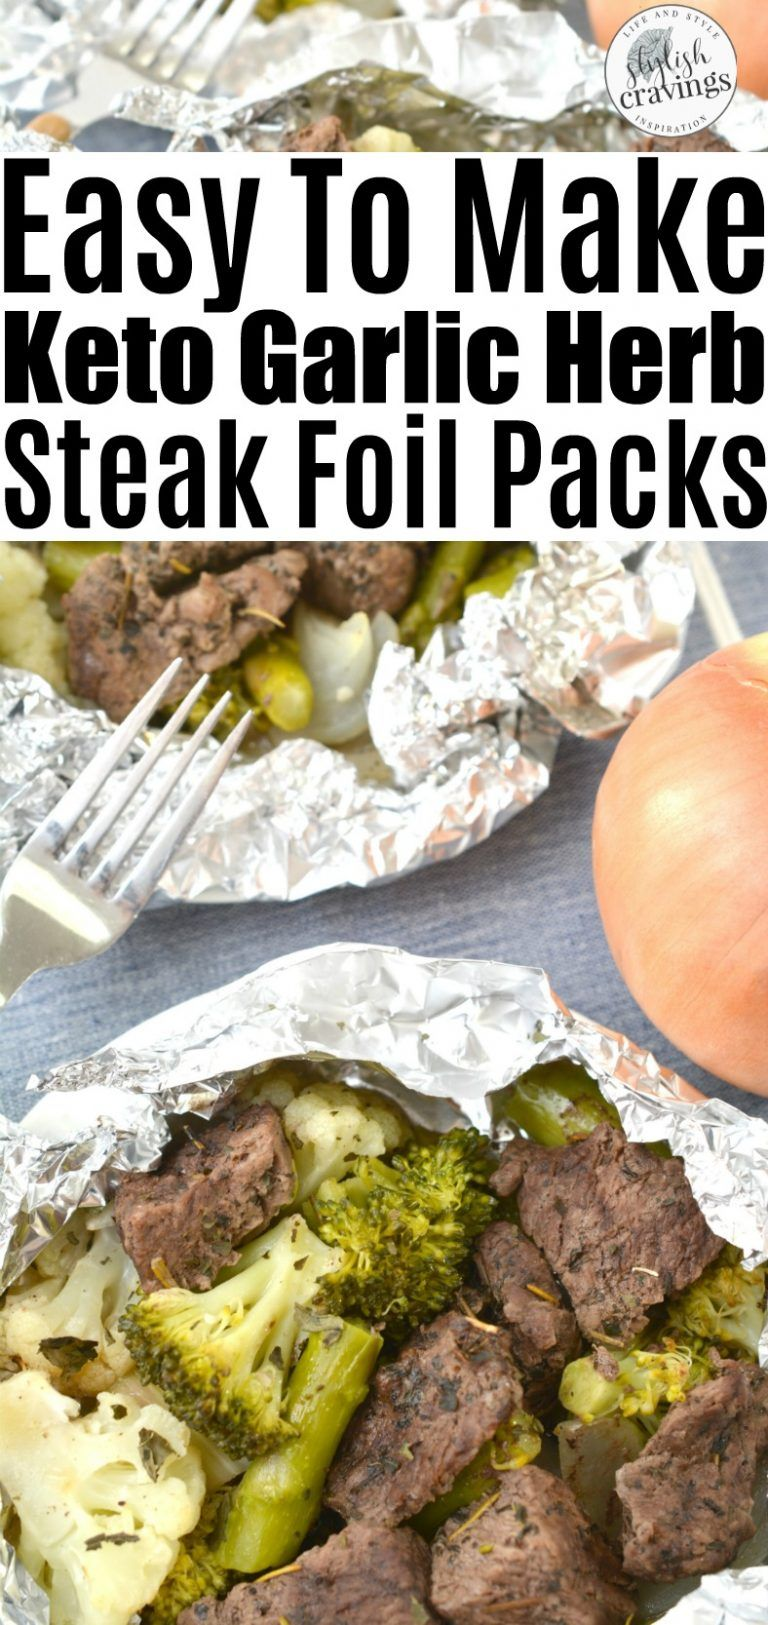 Photo of Easy To Make Keto Garlic Steak Foil Packs #ketorecipes #lowcarbdiet #keto #foilp…